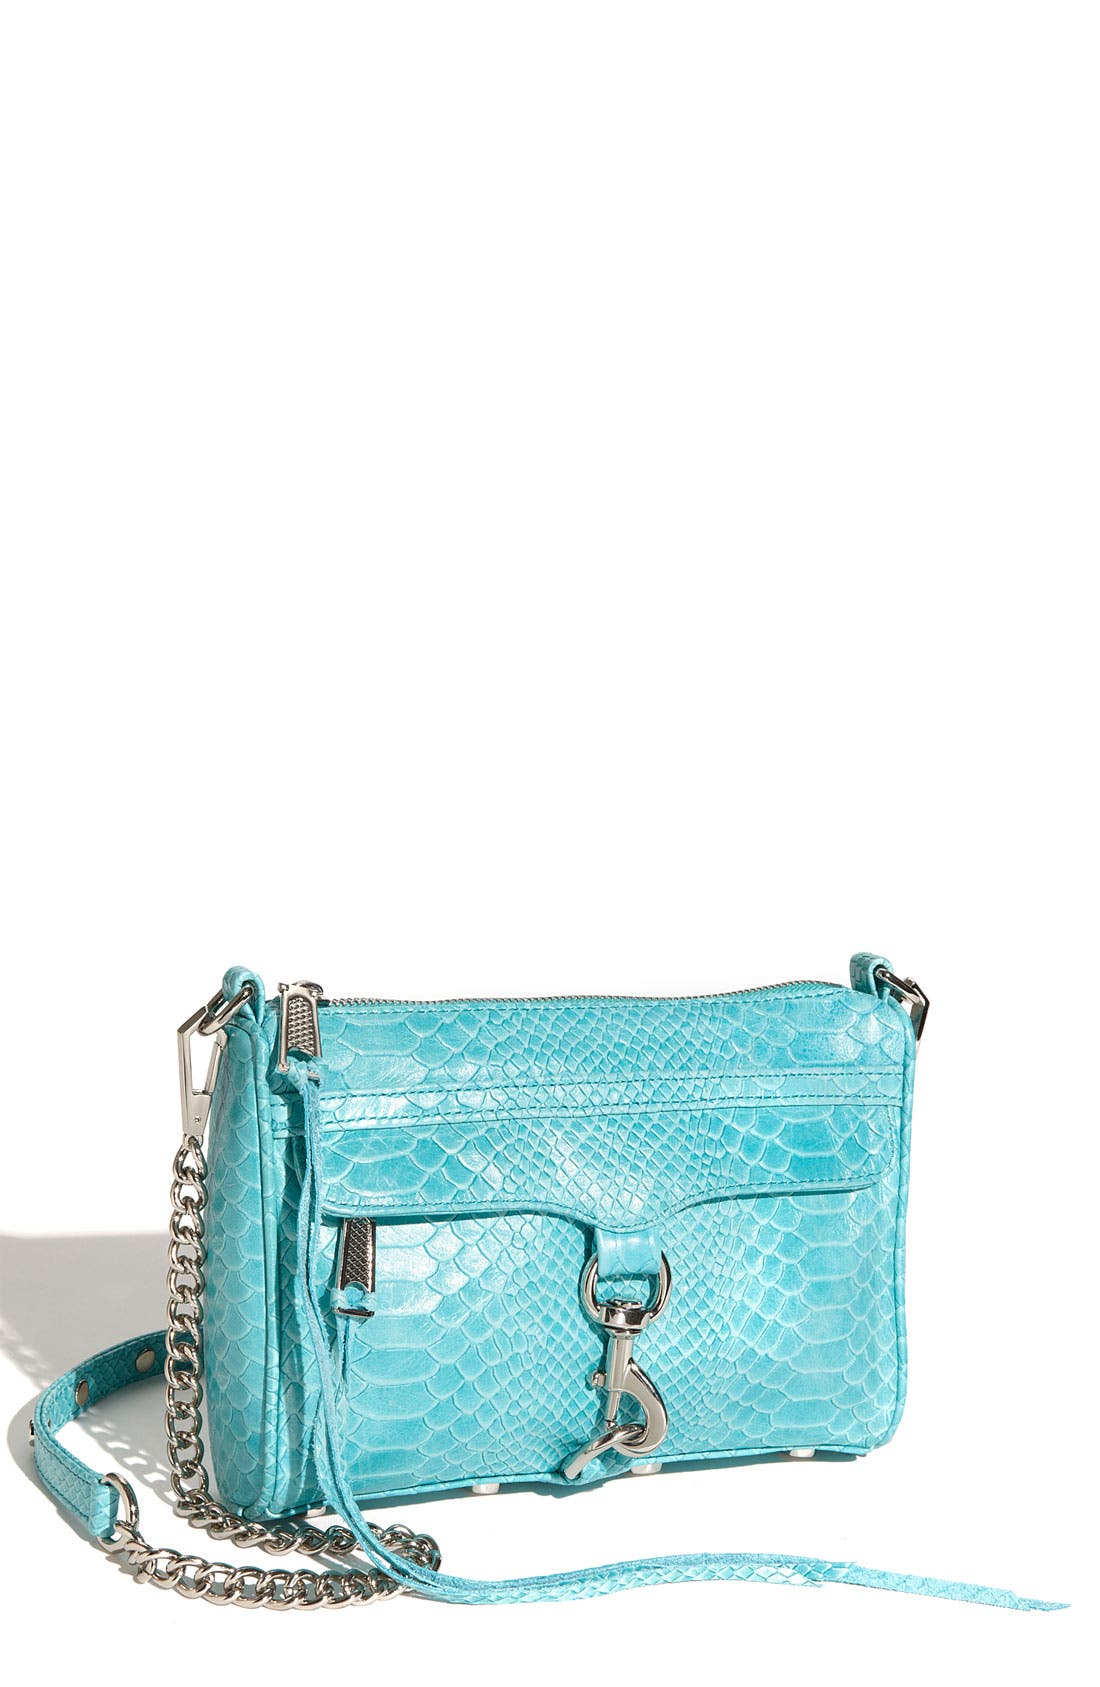 'Mini MAC' Croc Embossed Convertible Crossbody Bag,                             Main thumbnail 15, color,